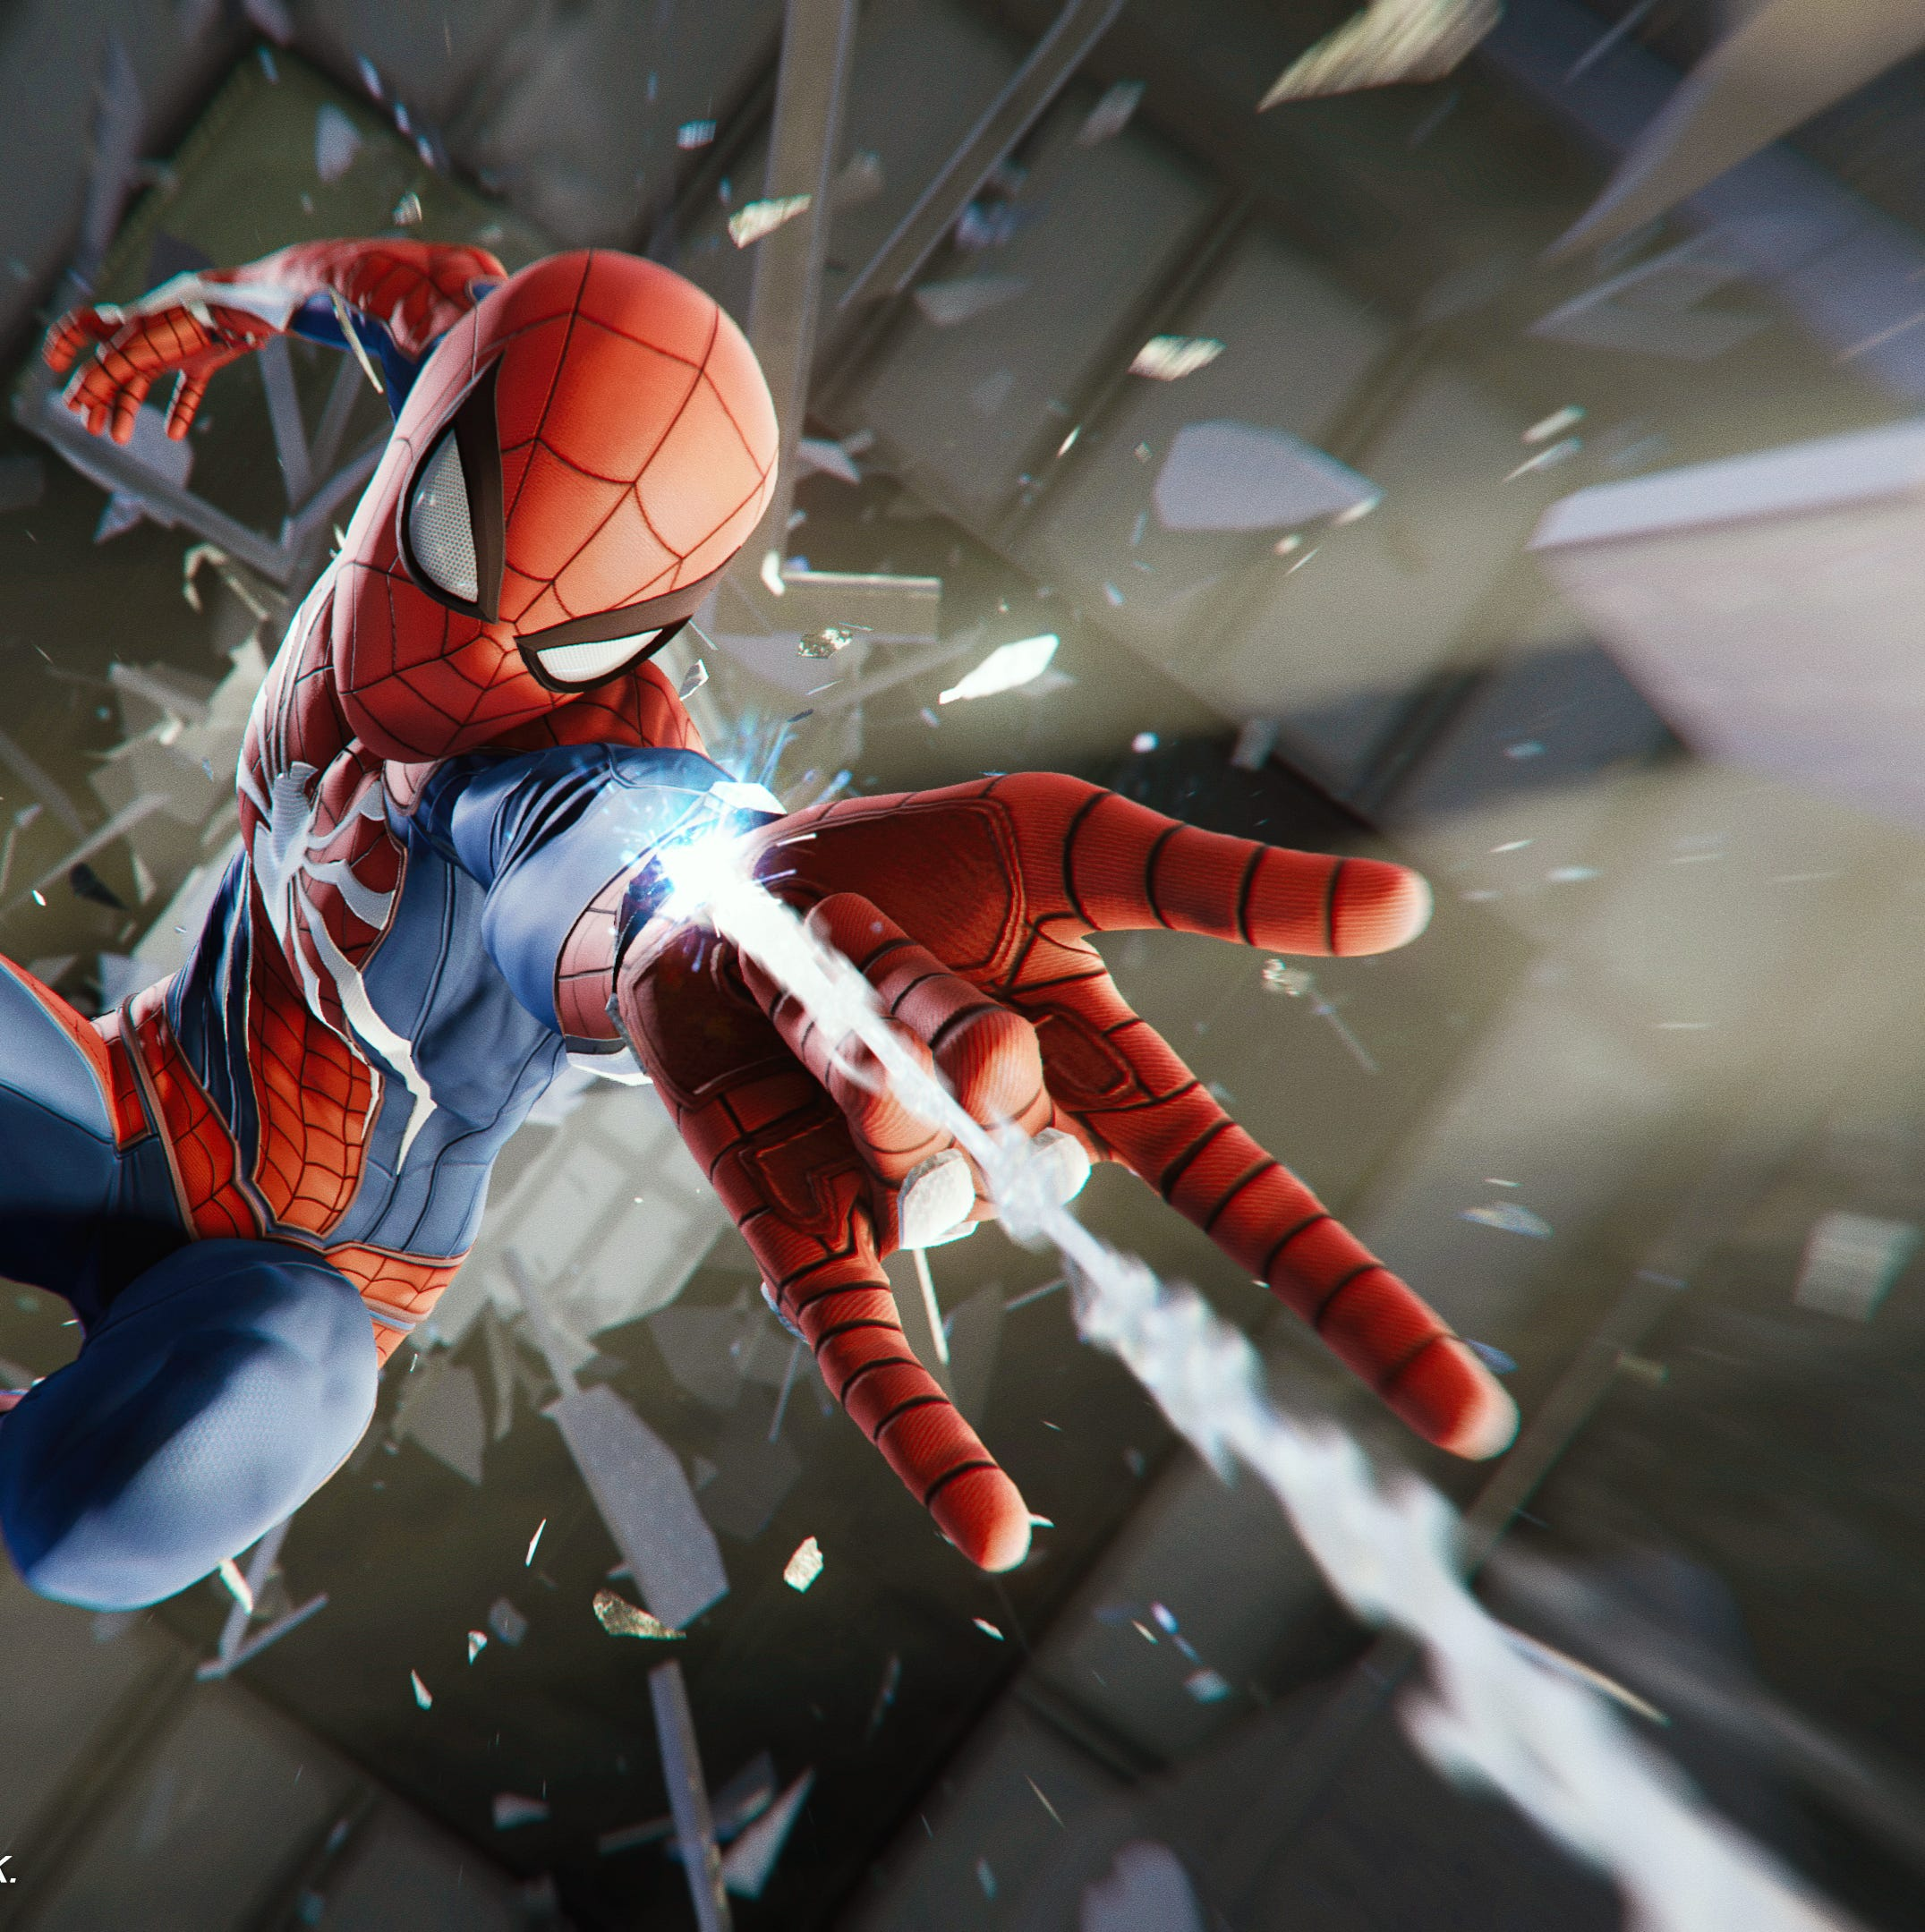 Marvel's 'Spider-Man' for PlayStation 4 swings to a record-breaking opening